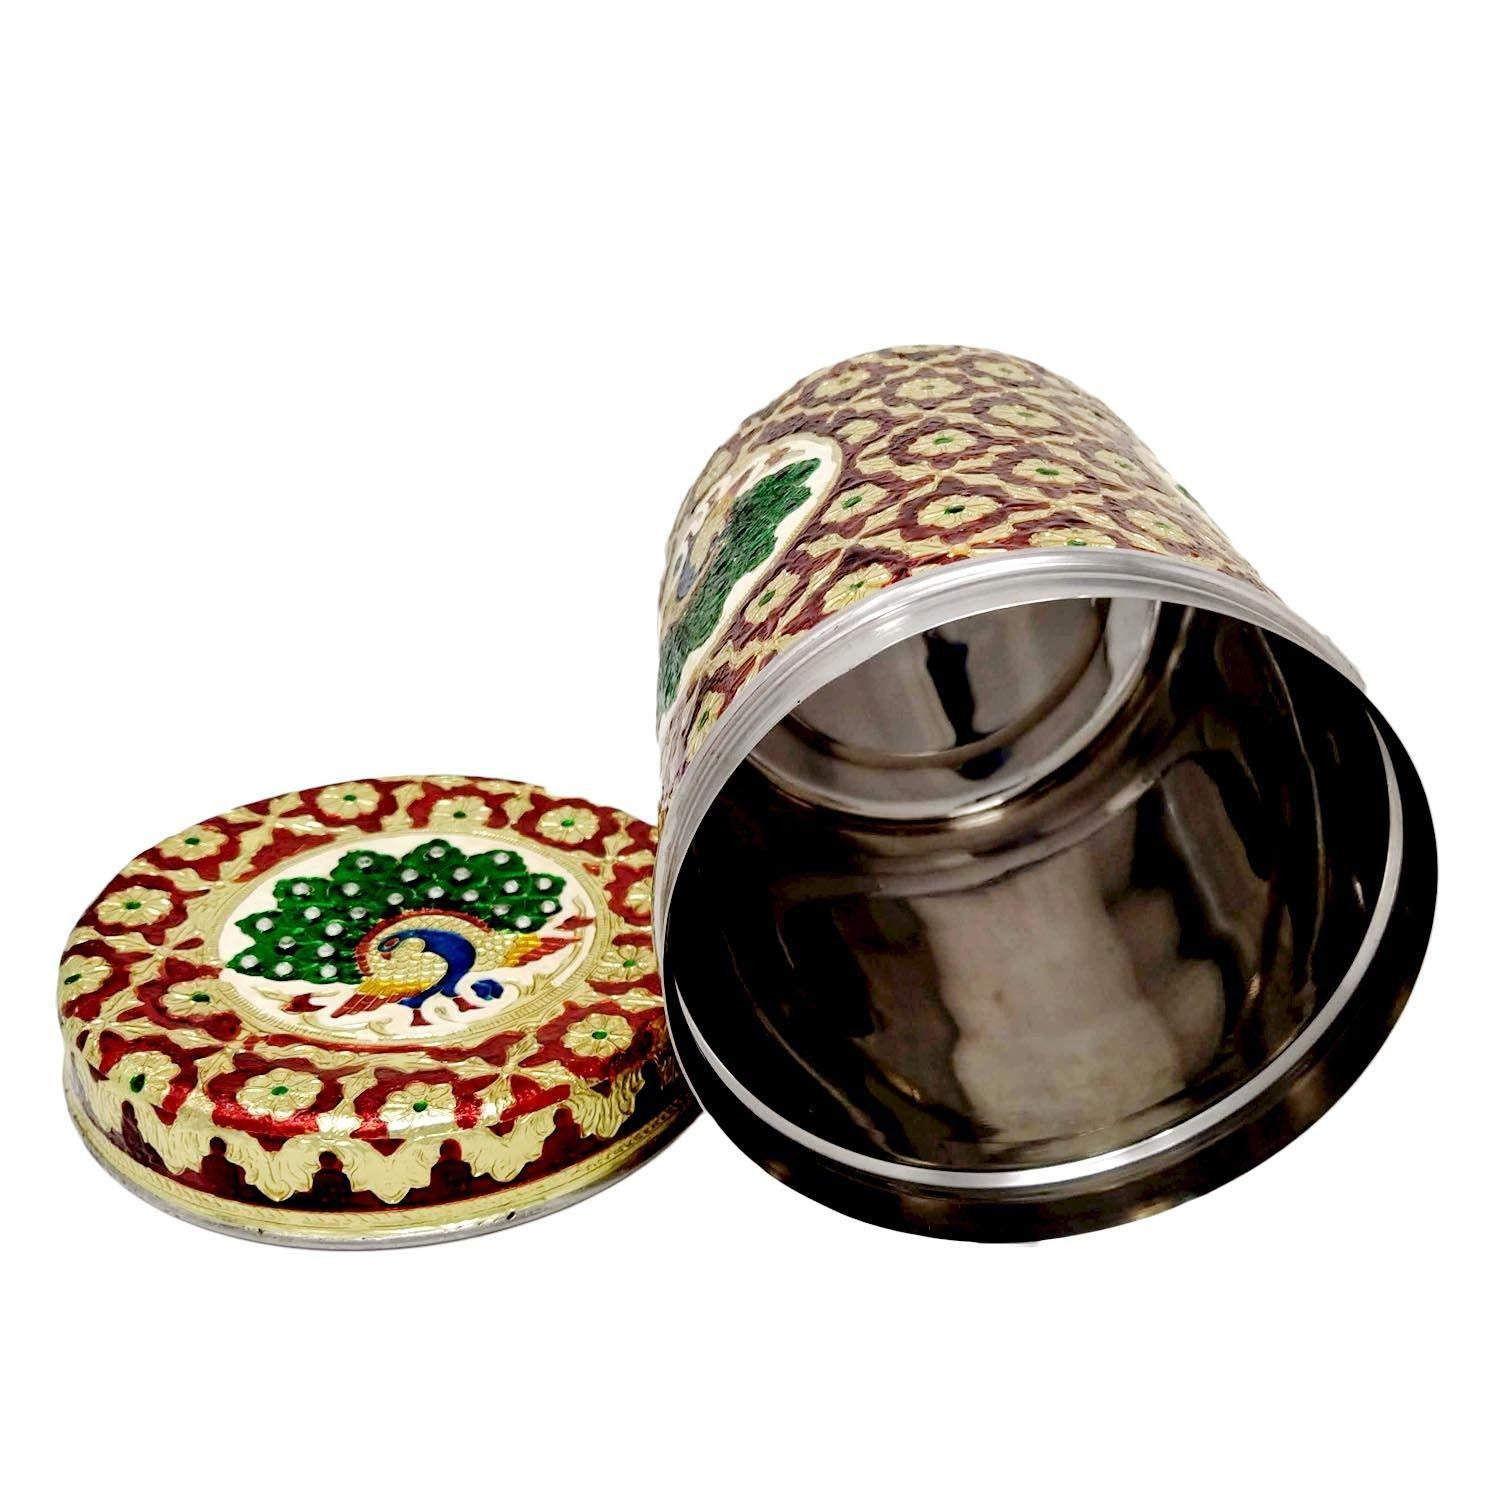 Stainless Steel Box Set | Meenakari Box Stainless Steel Set of Five Kitchen Box | Kitchen Container.